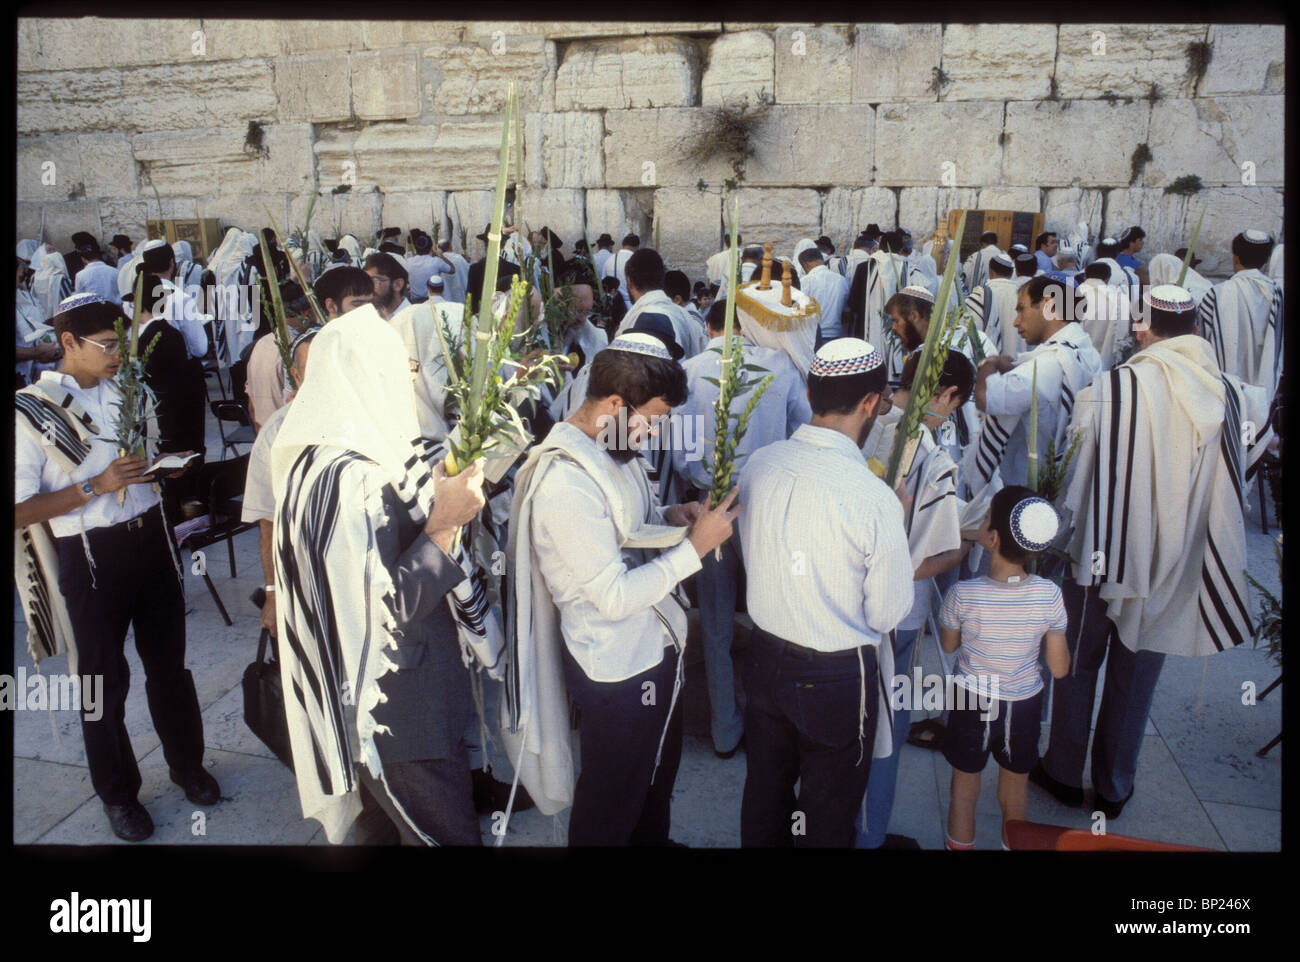 425. PRAYING AT THE WESTERN WALL WITH THE FOUR SPECIES DURING THE FEAST OF SUKKOT (TABERNACLE) - Stock Image